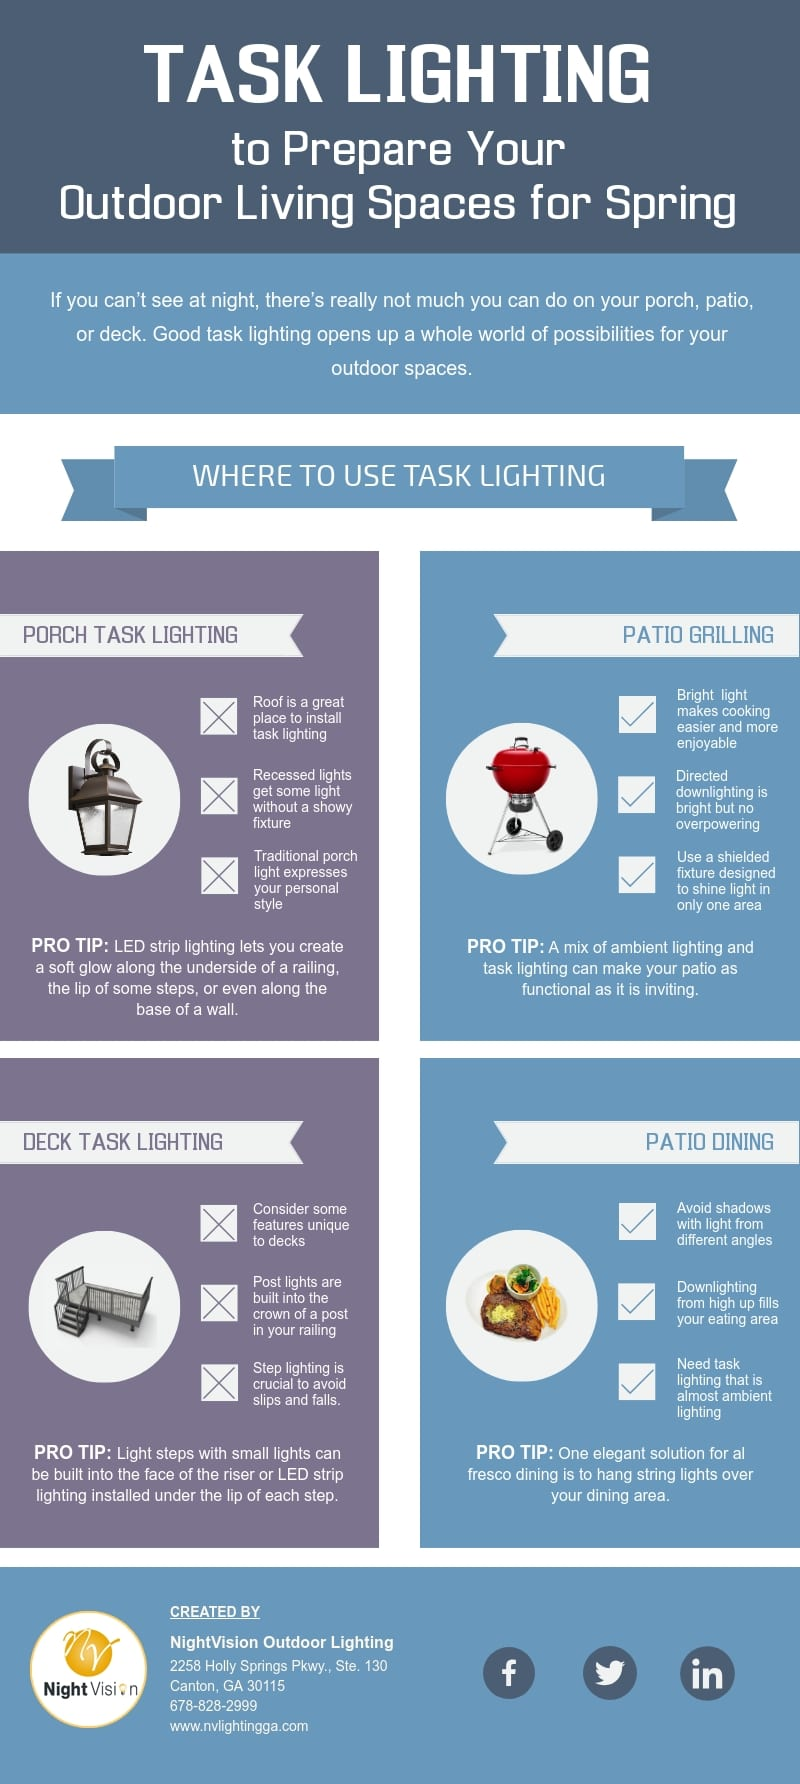 Task Lighting to Prepare Your Outdoor Living Spaces for Spring [infographic]